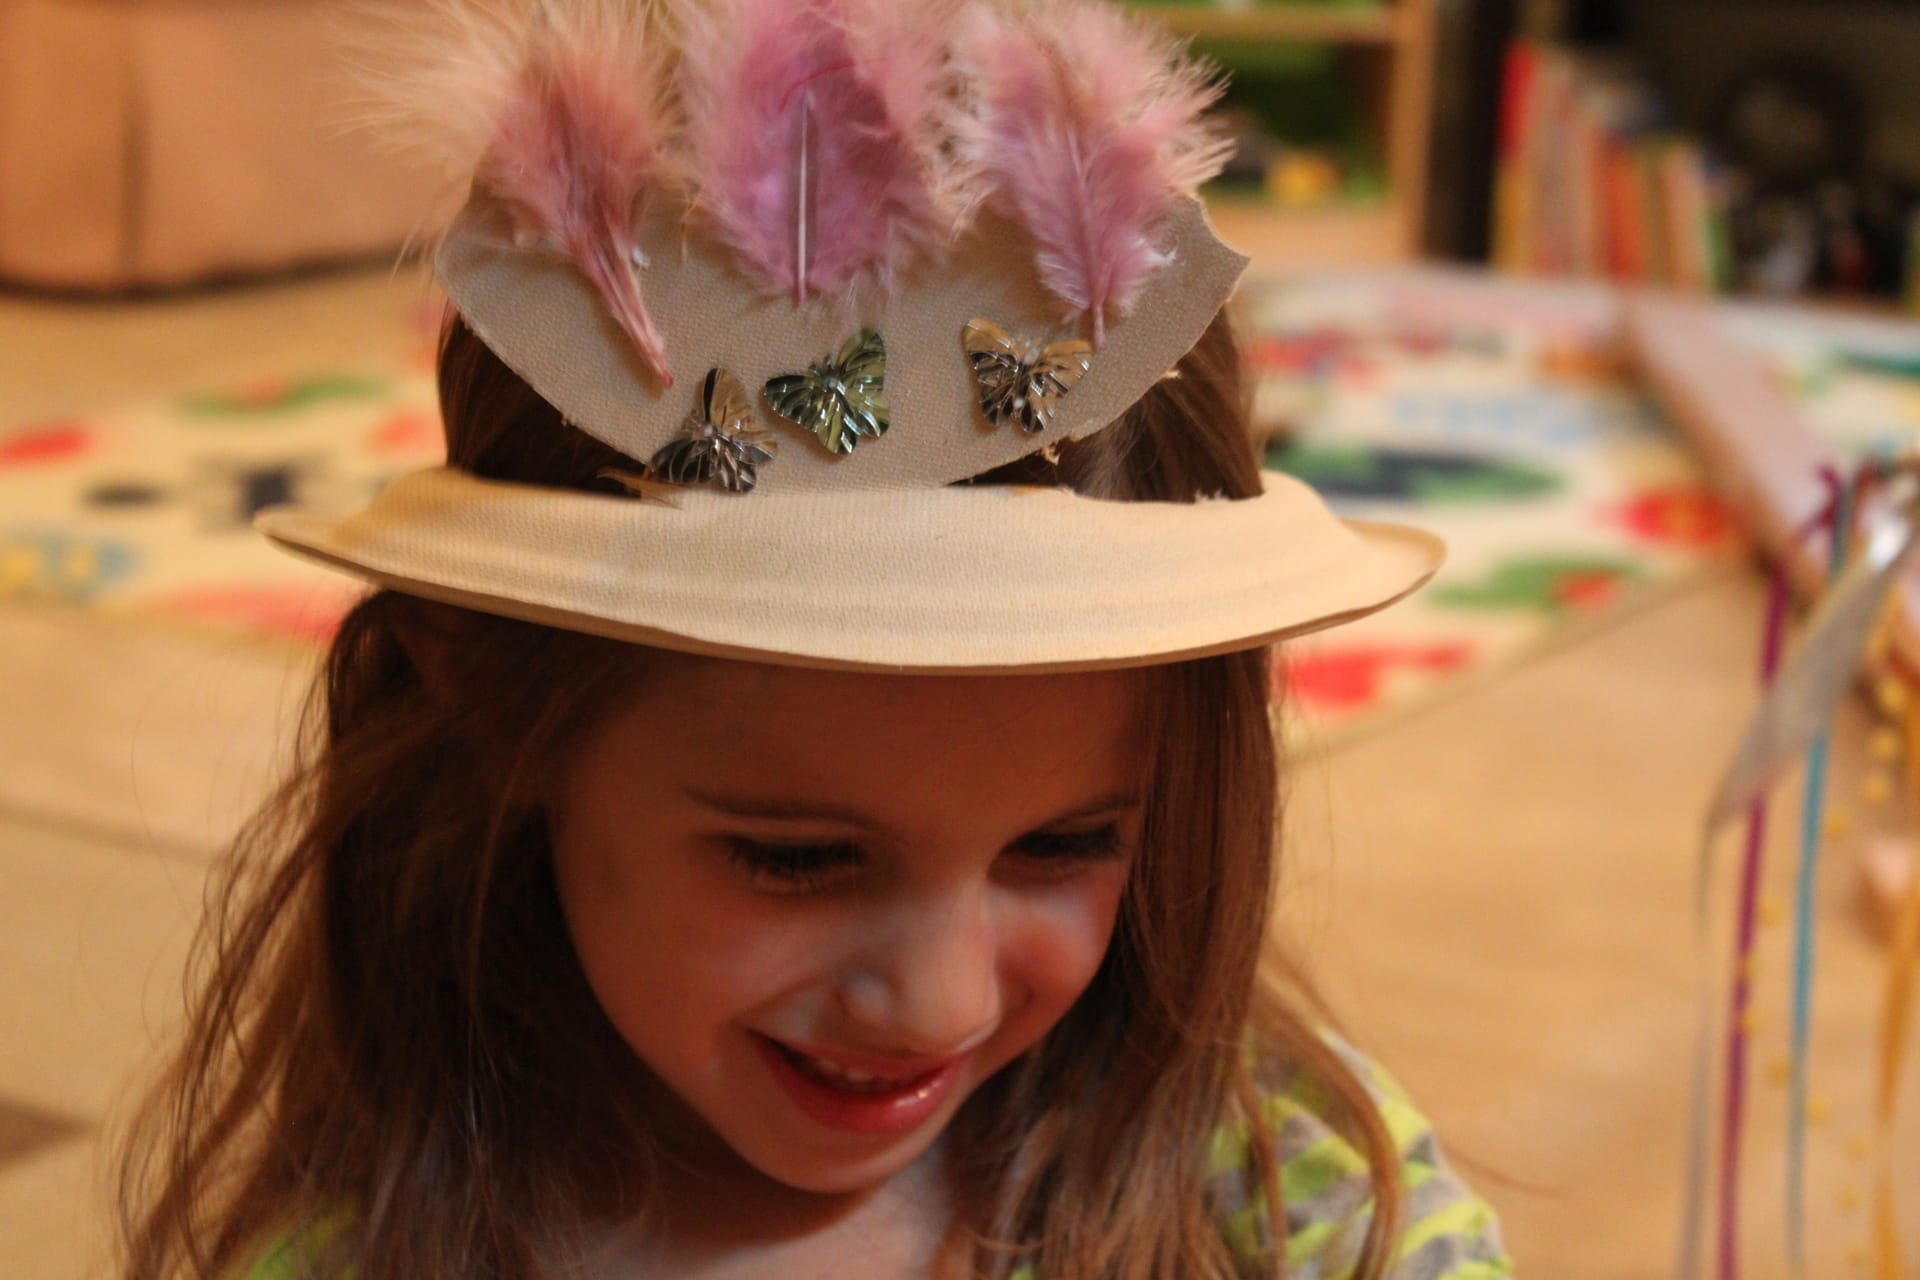 sc 1 th 183 & Paper Plate Hat